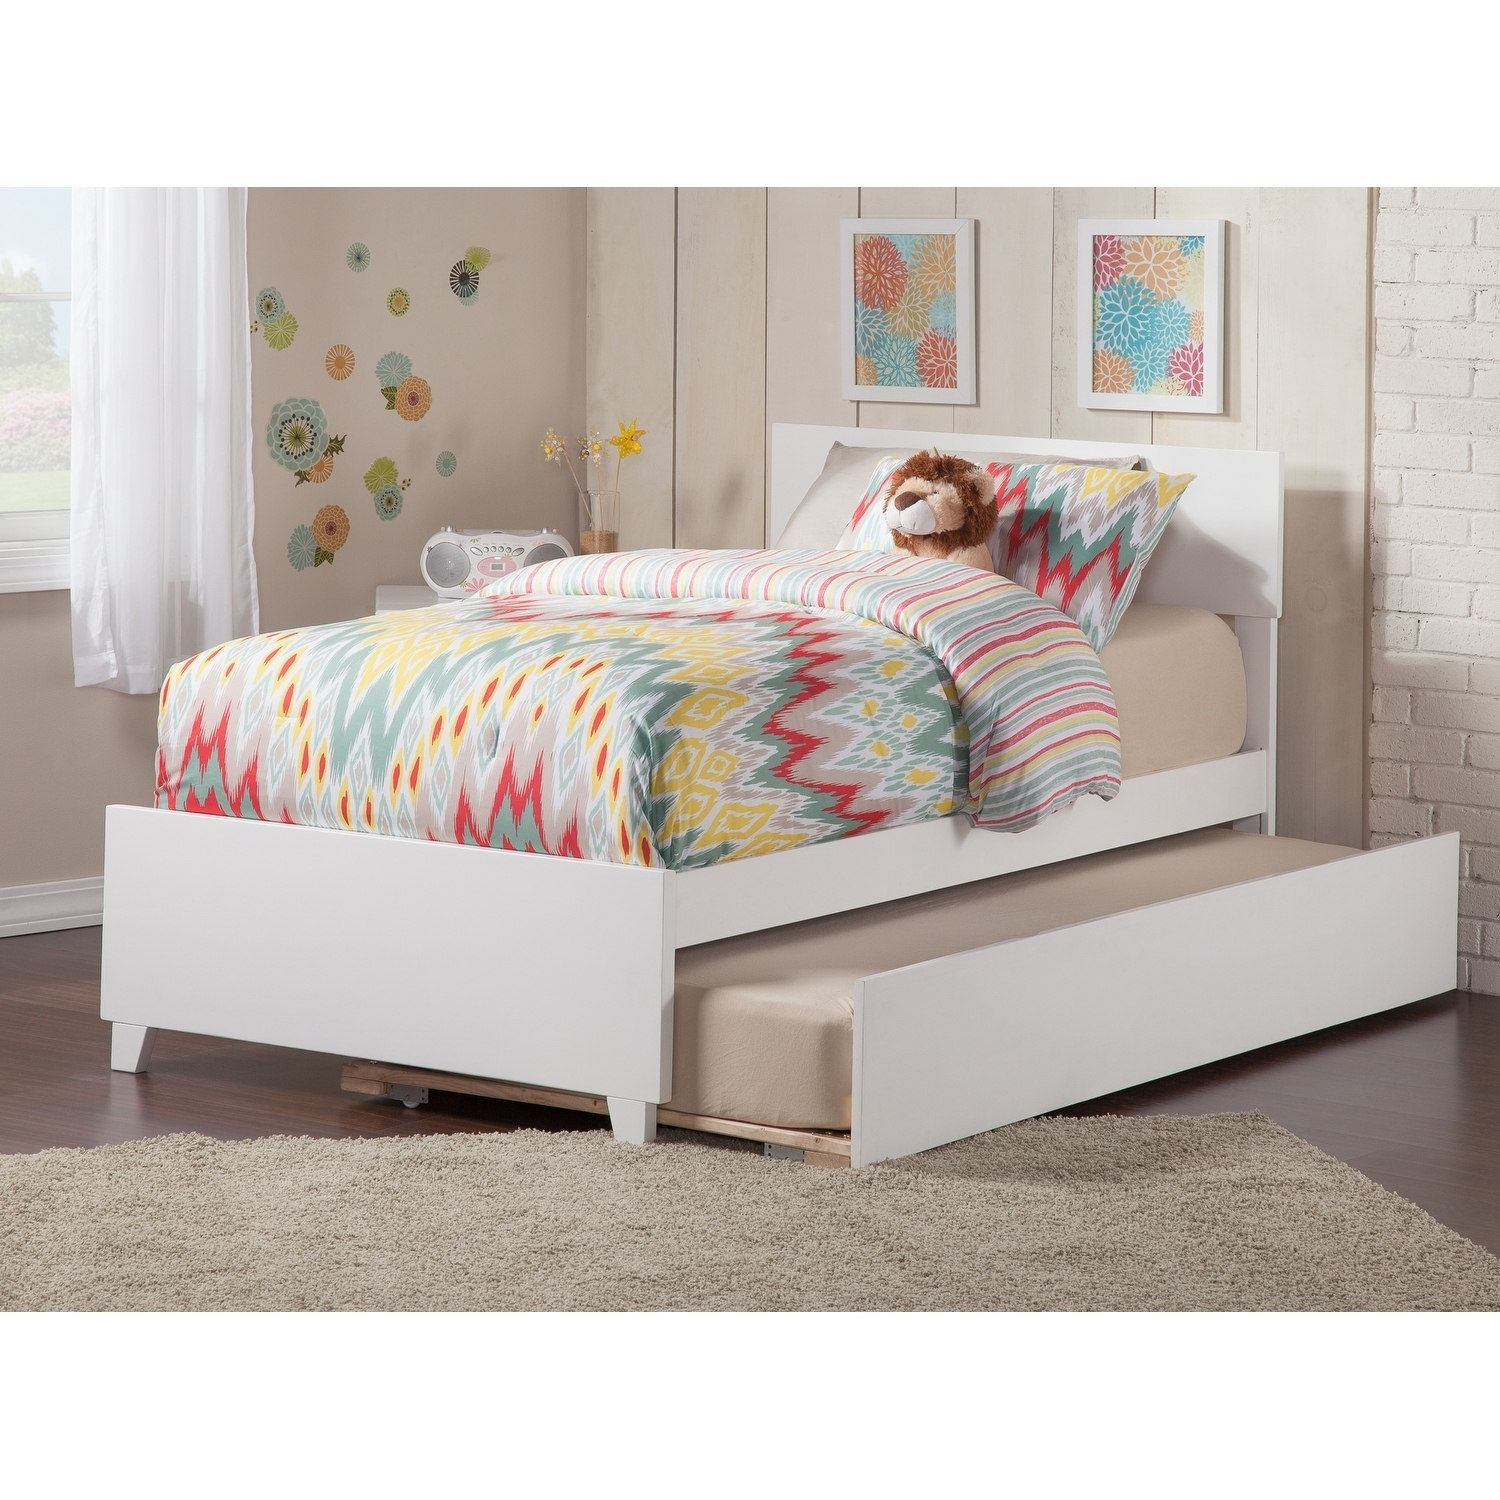 atlantic furniture orlando twin bed with matching foot board with